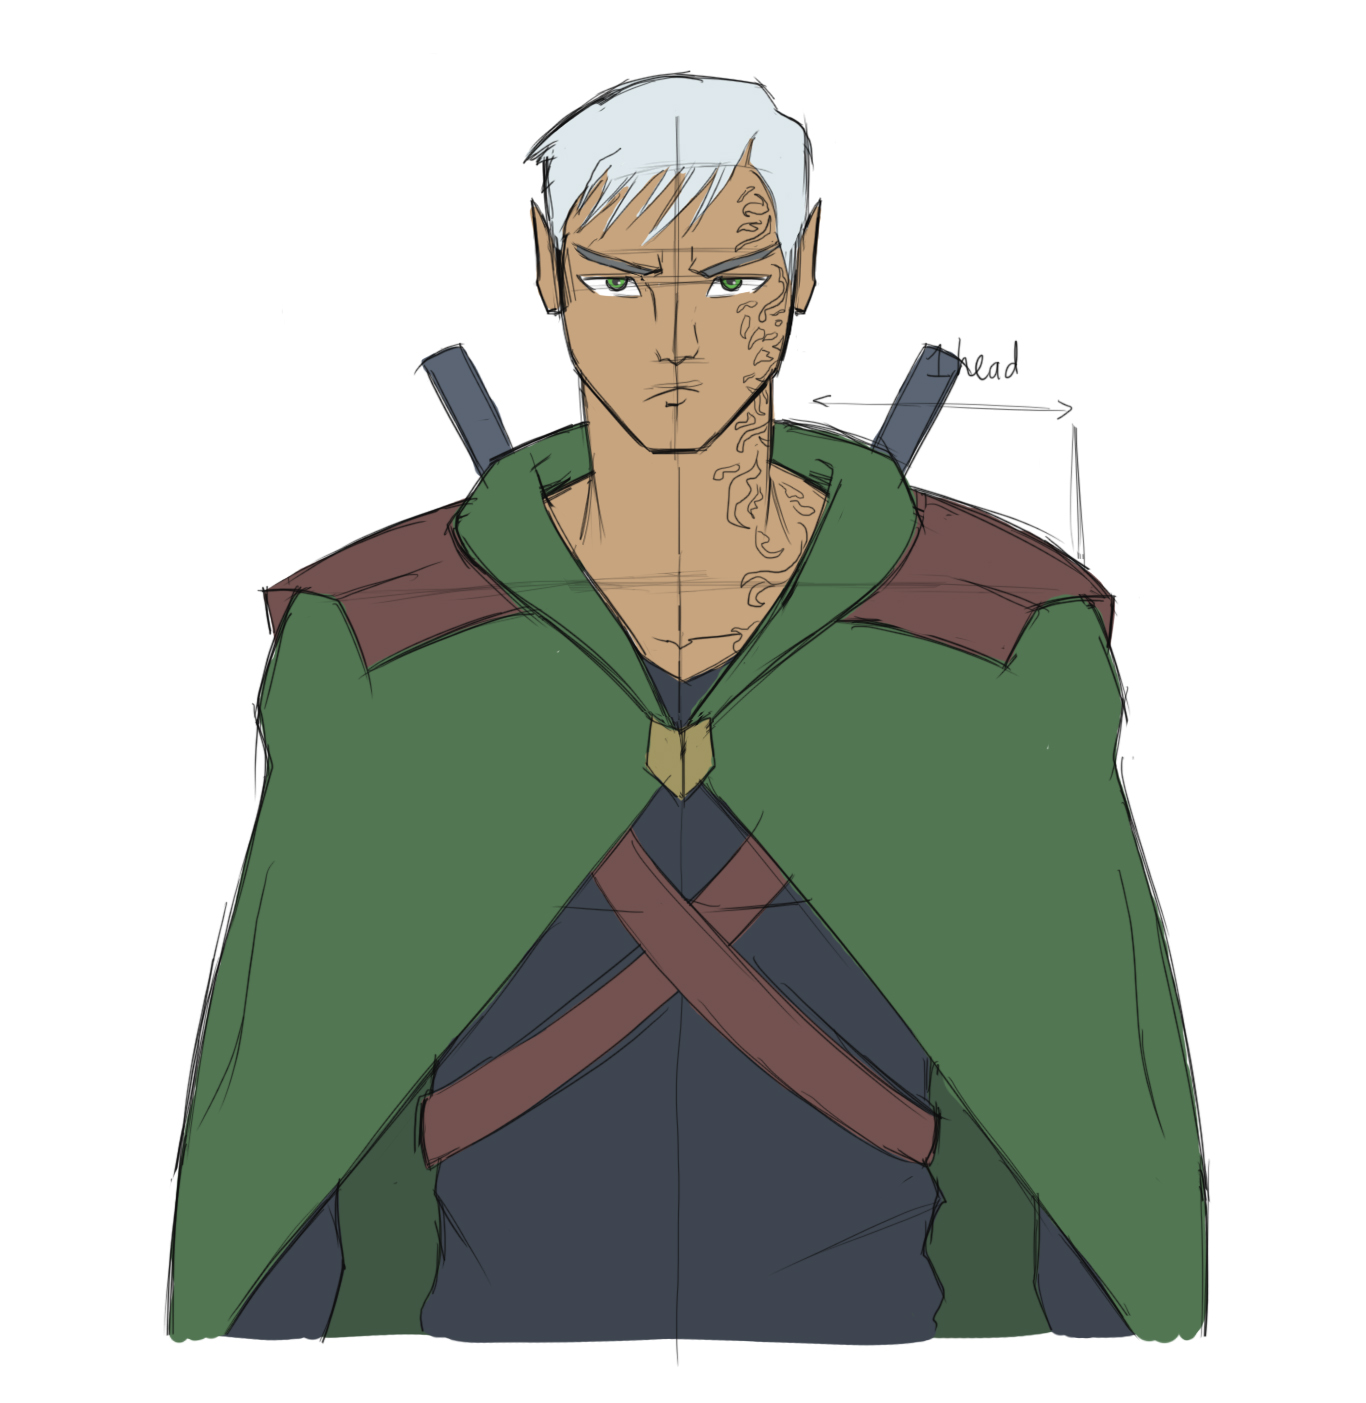 Tan and built male with snow-white hair. He looks at us with a determined expression. He wears a forest-green cloak with eyes to match. Underneath is a black shirt. On his back he carries two twin blades, the handles are peeking over his shoulders.